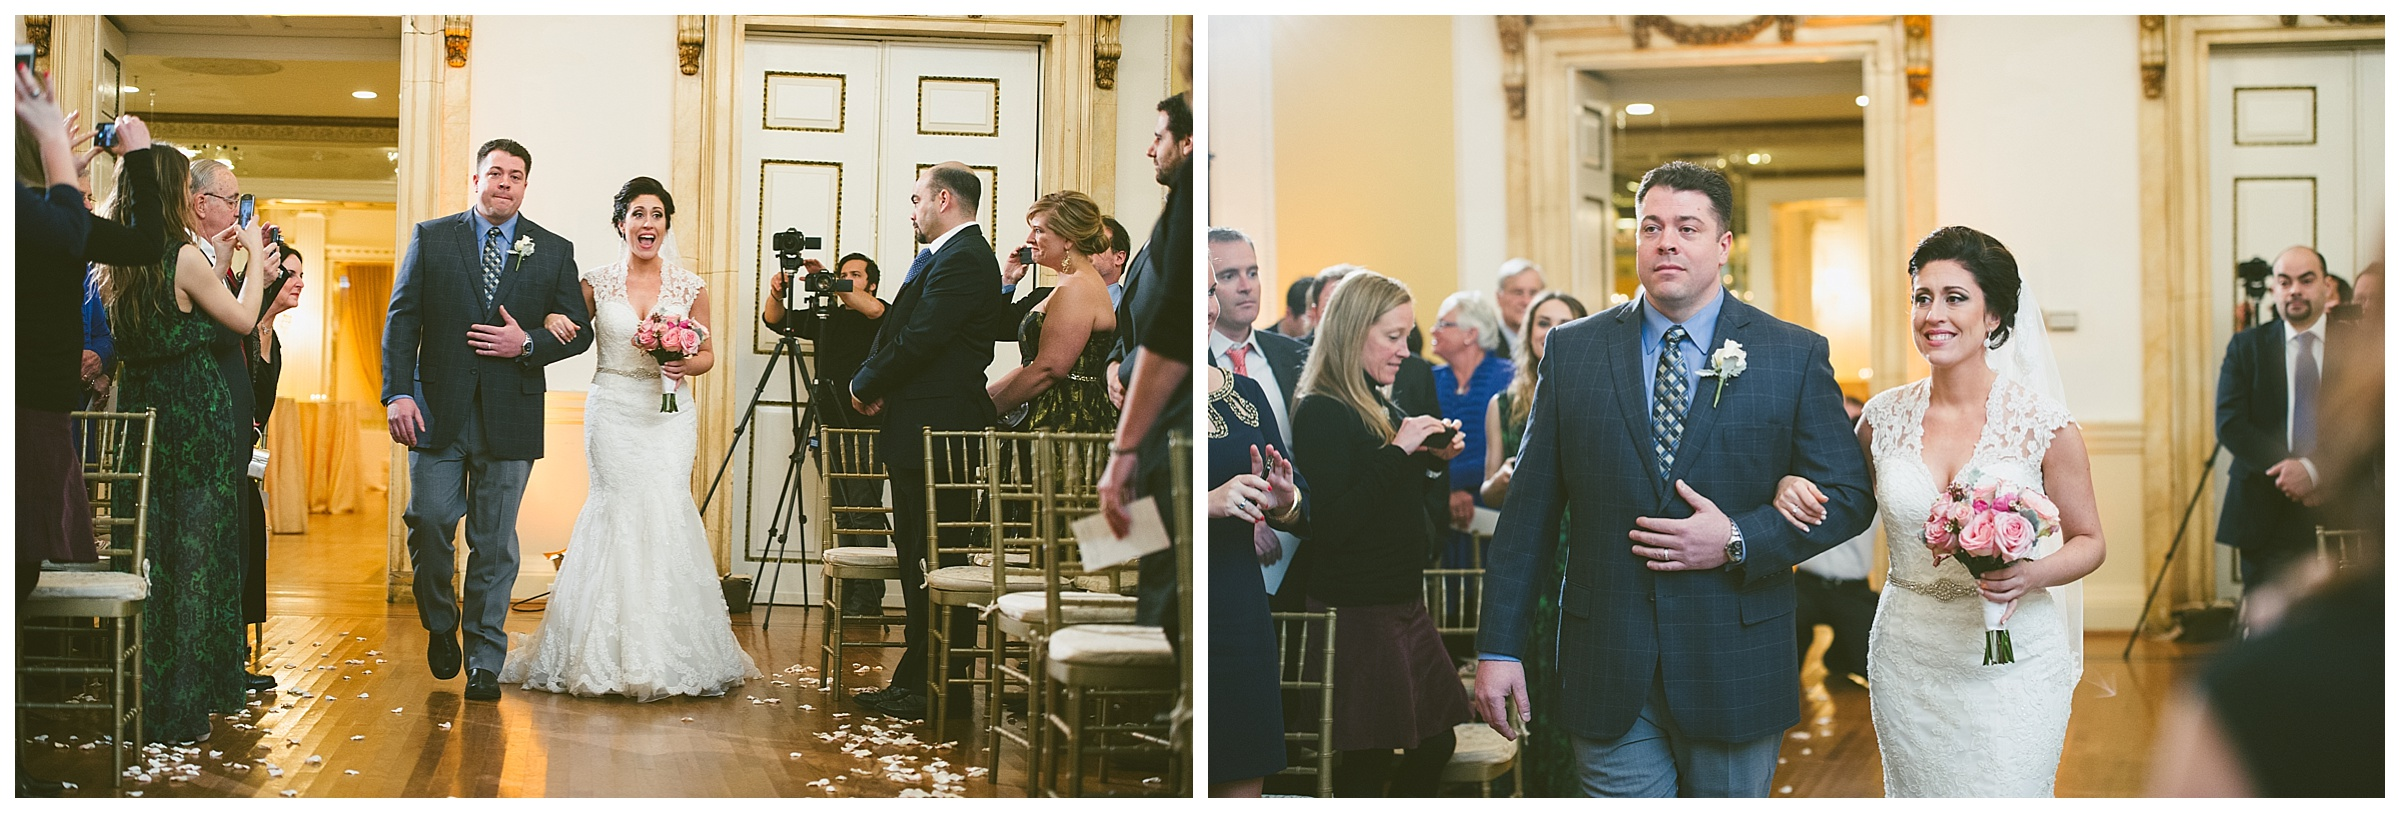 0064_Stotesbury Mansion Wedding Philadelphia_0080